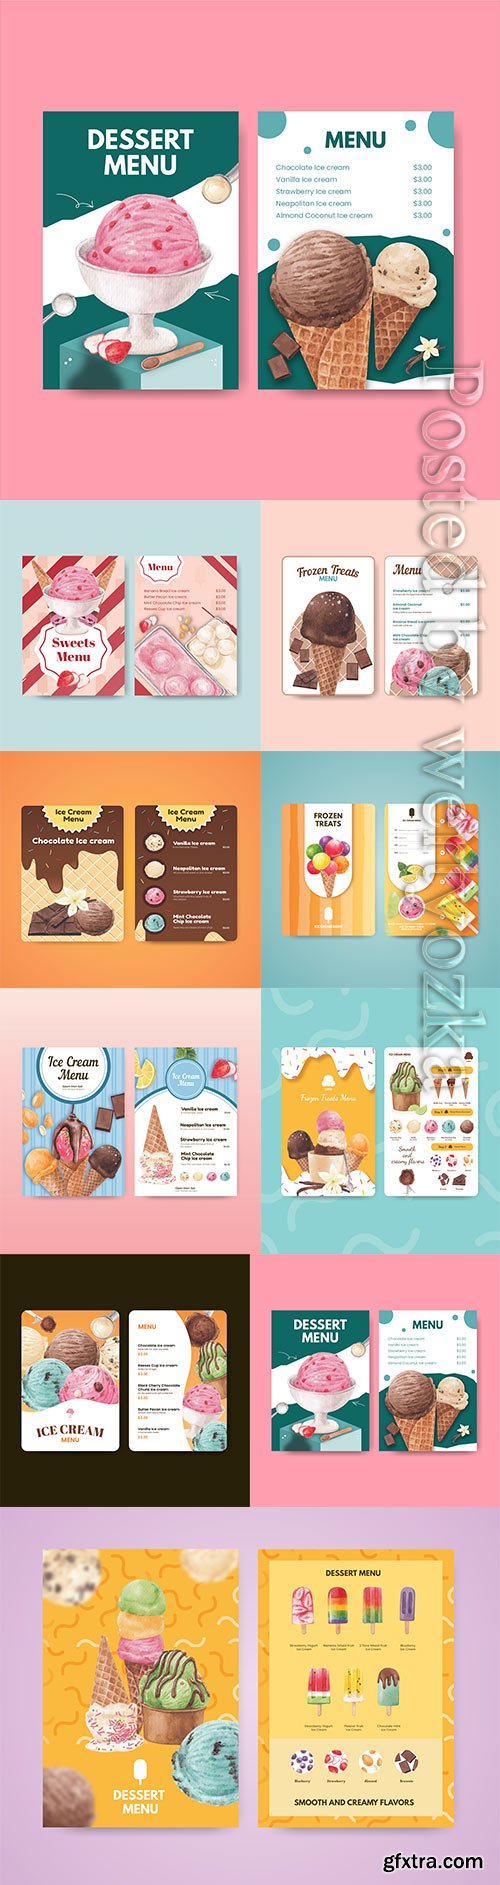 Menu template with ice cream flavor concept, vector watercolor style